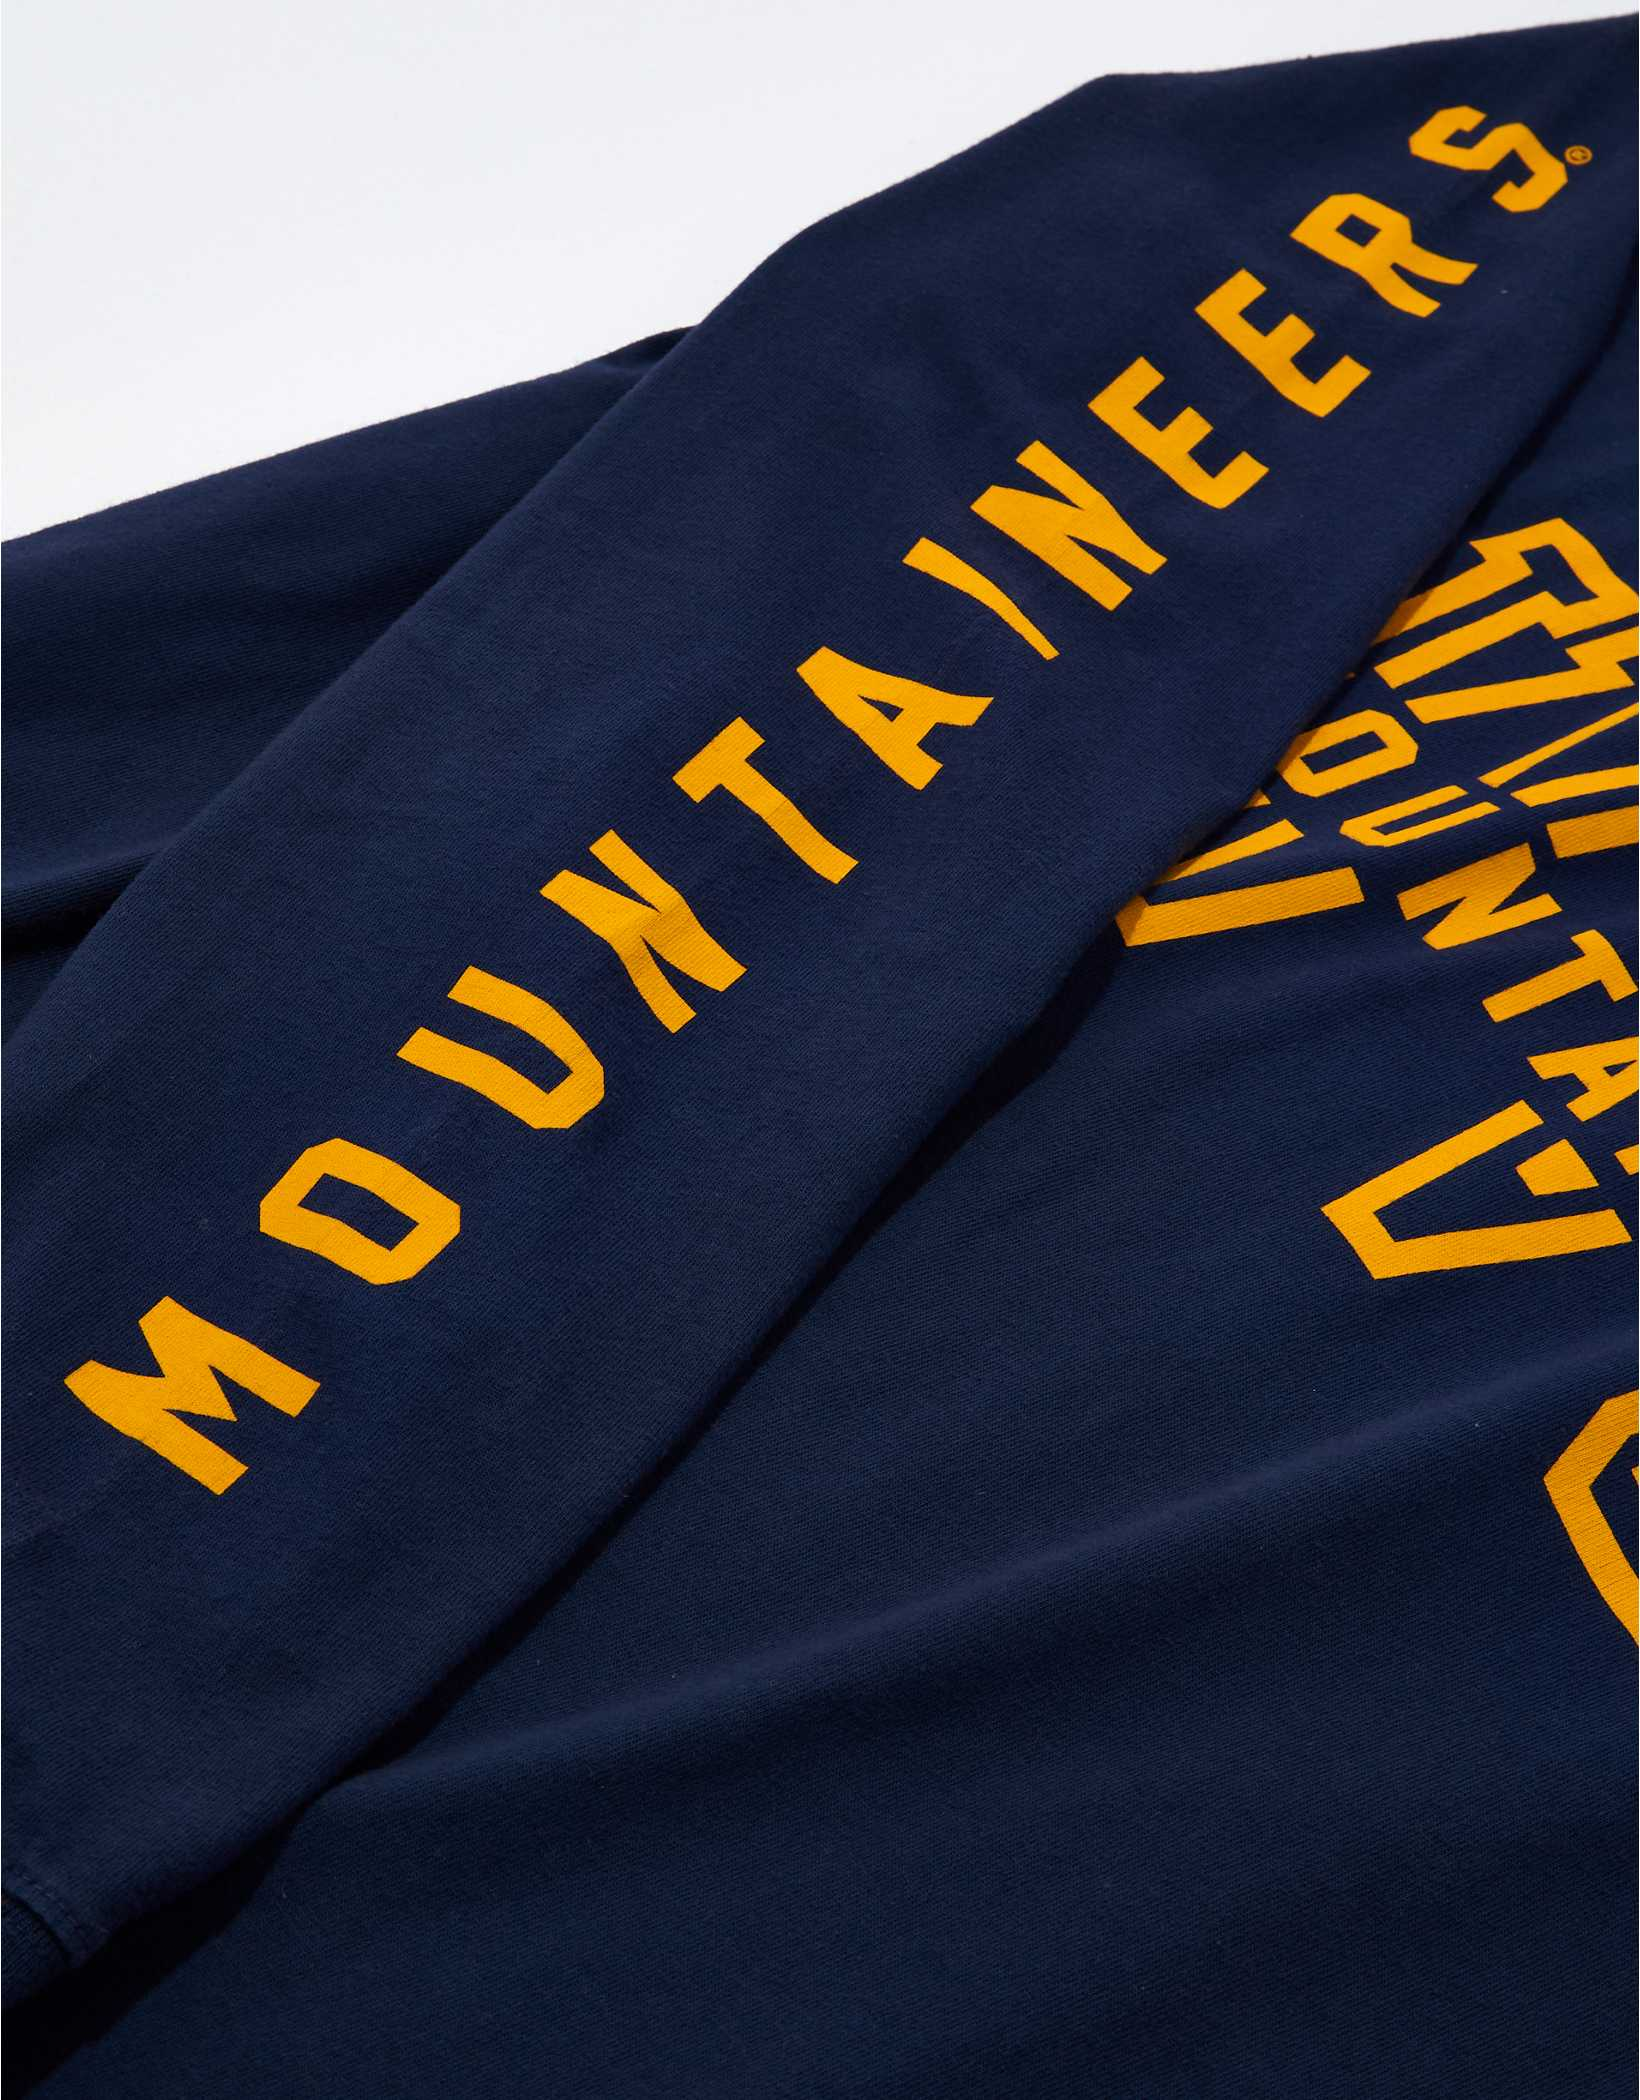 Tailgate Men's WVU Mountaineers Long-Sleeve Graphic T-Shirt